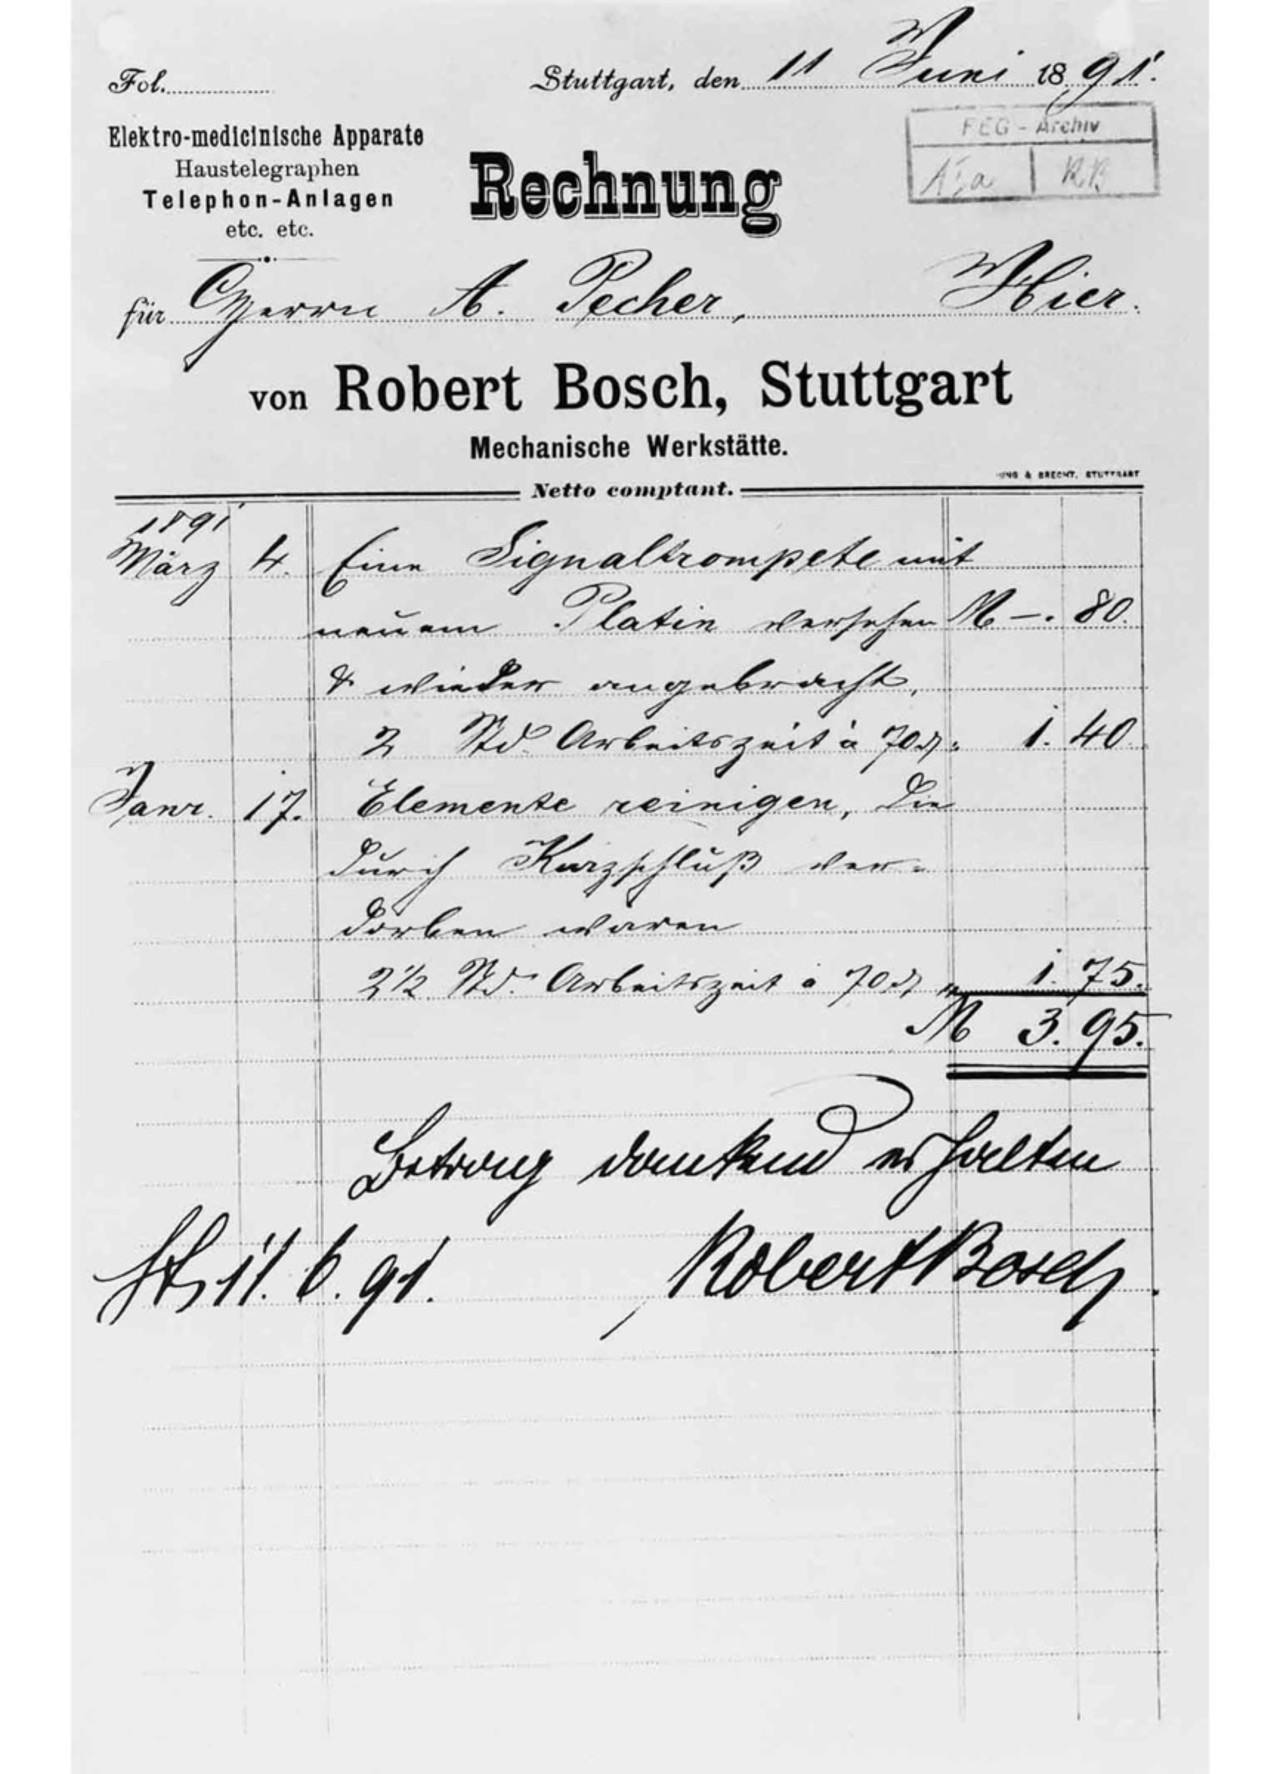 Bill from the early days of the company, 1891 - Bosch Media Service